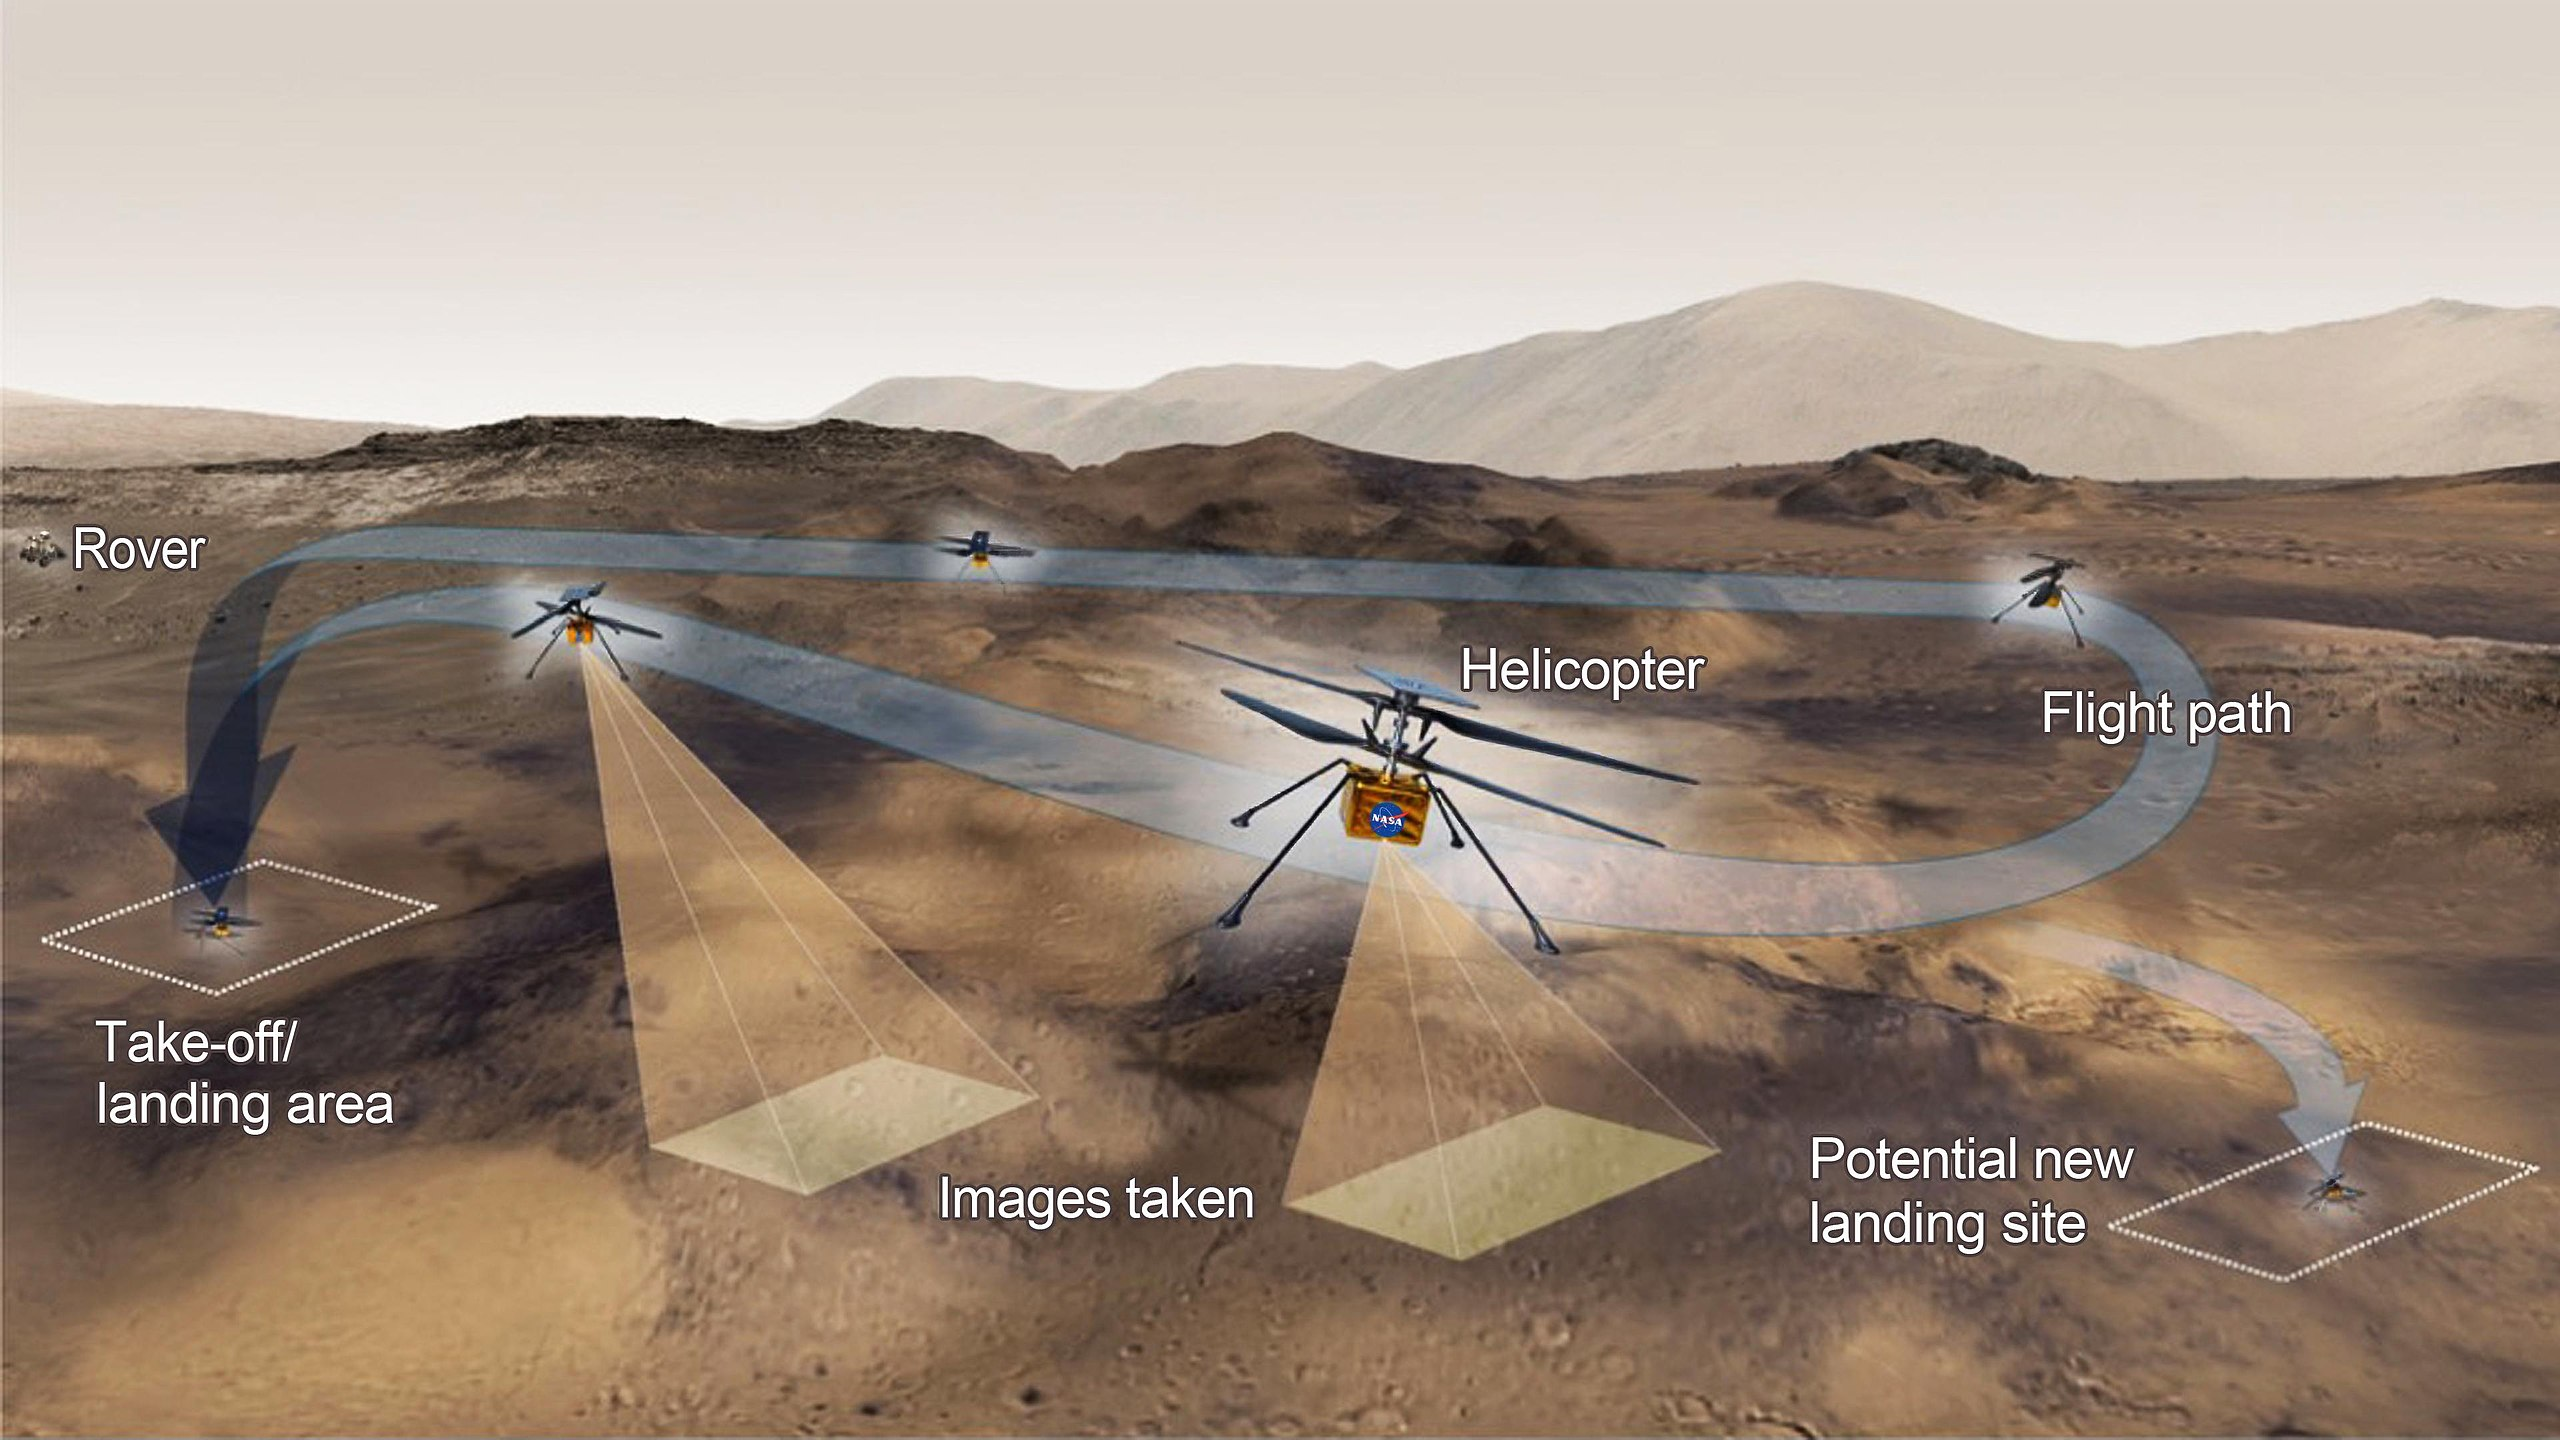 NASA'S Ingenuity Helicopter Completes Historic Test Flight On Mars